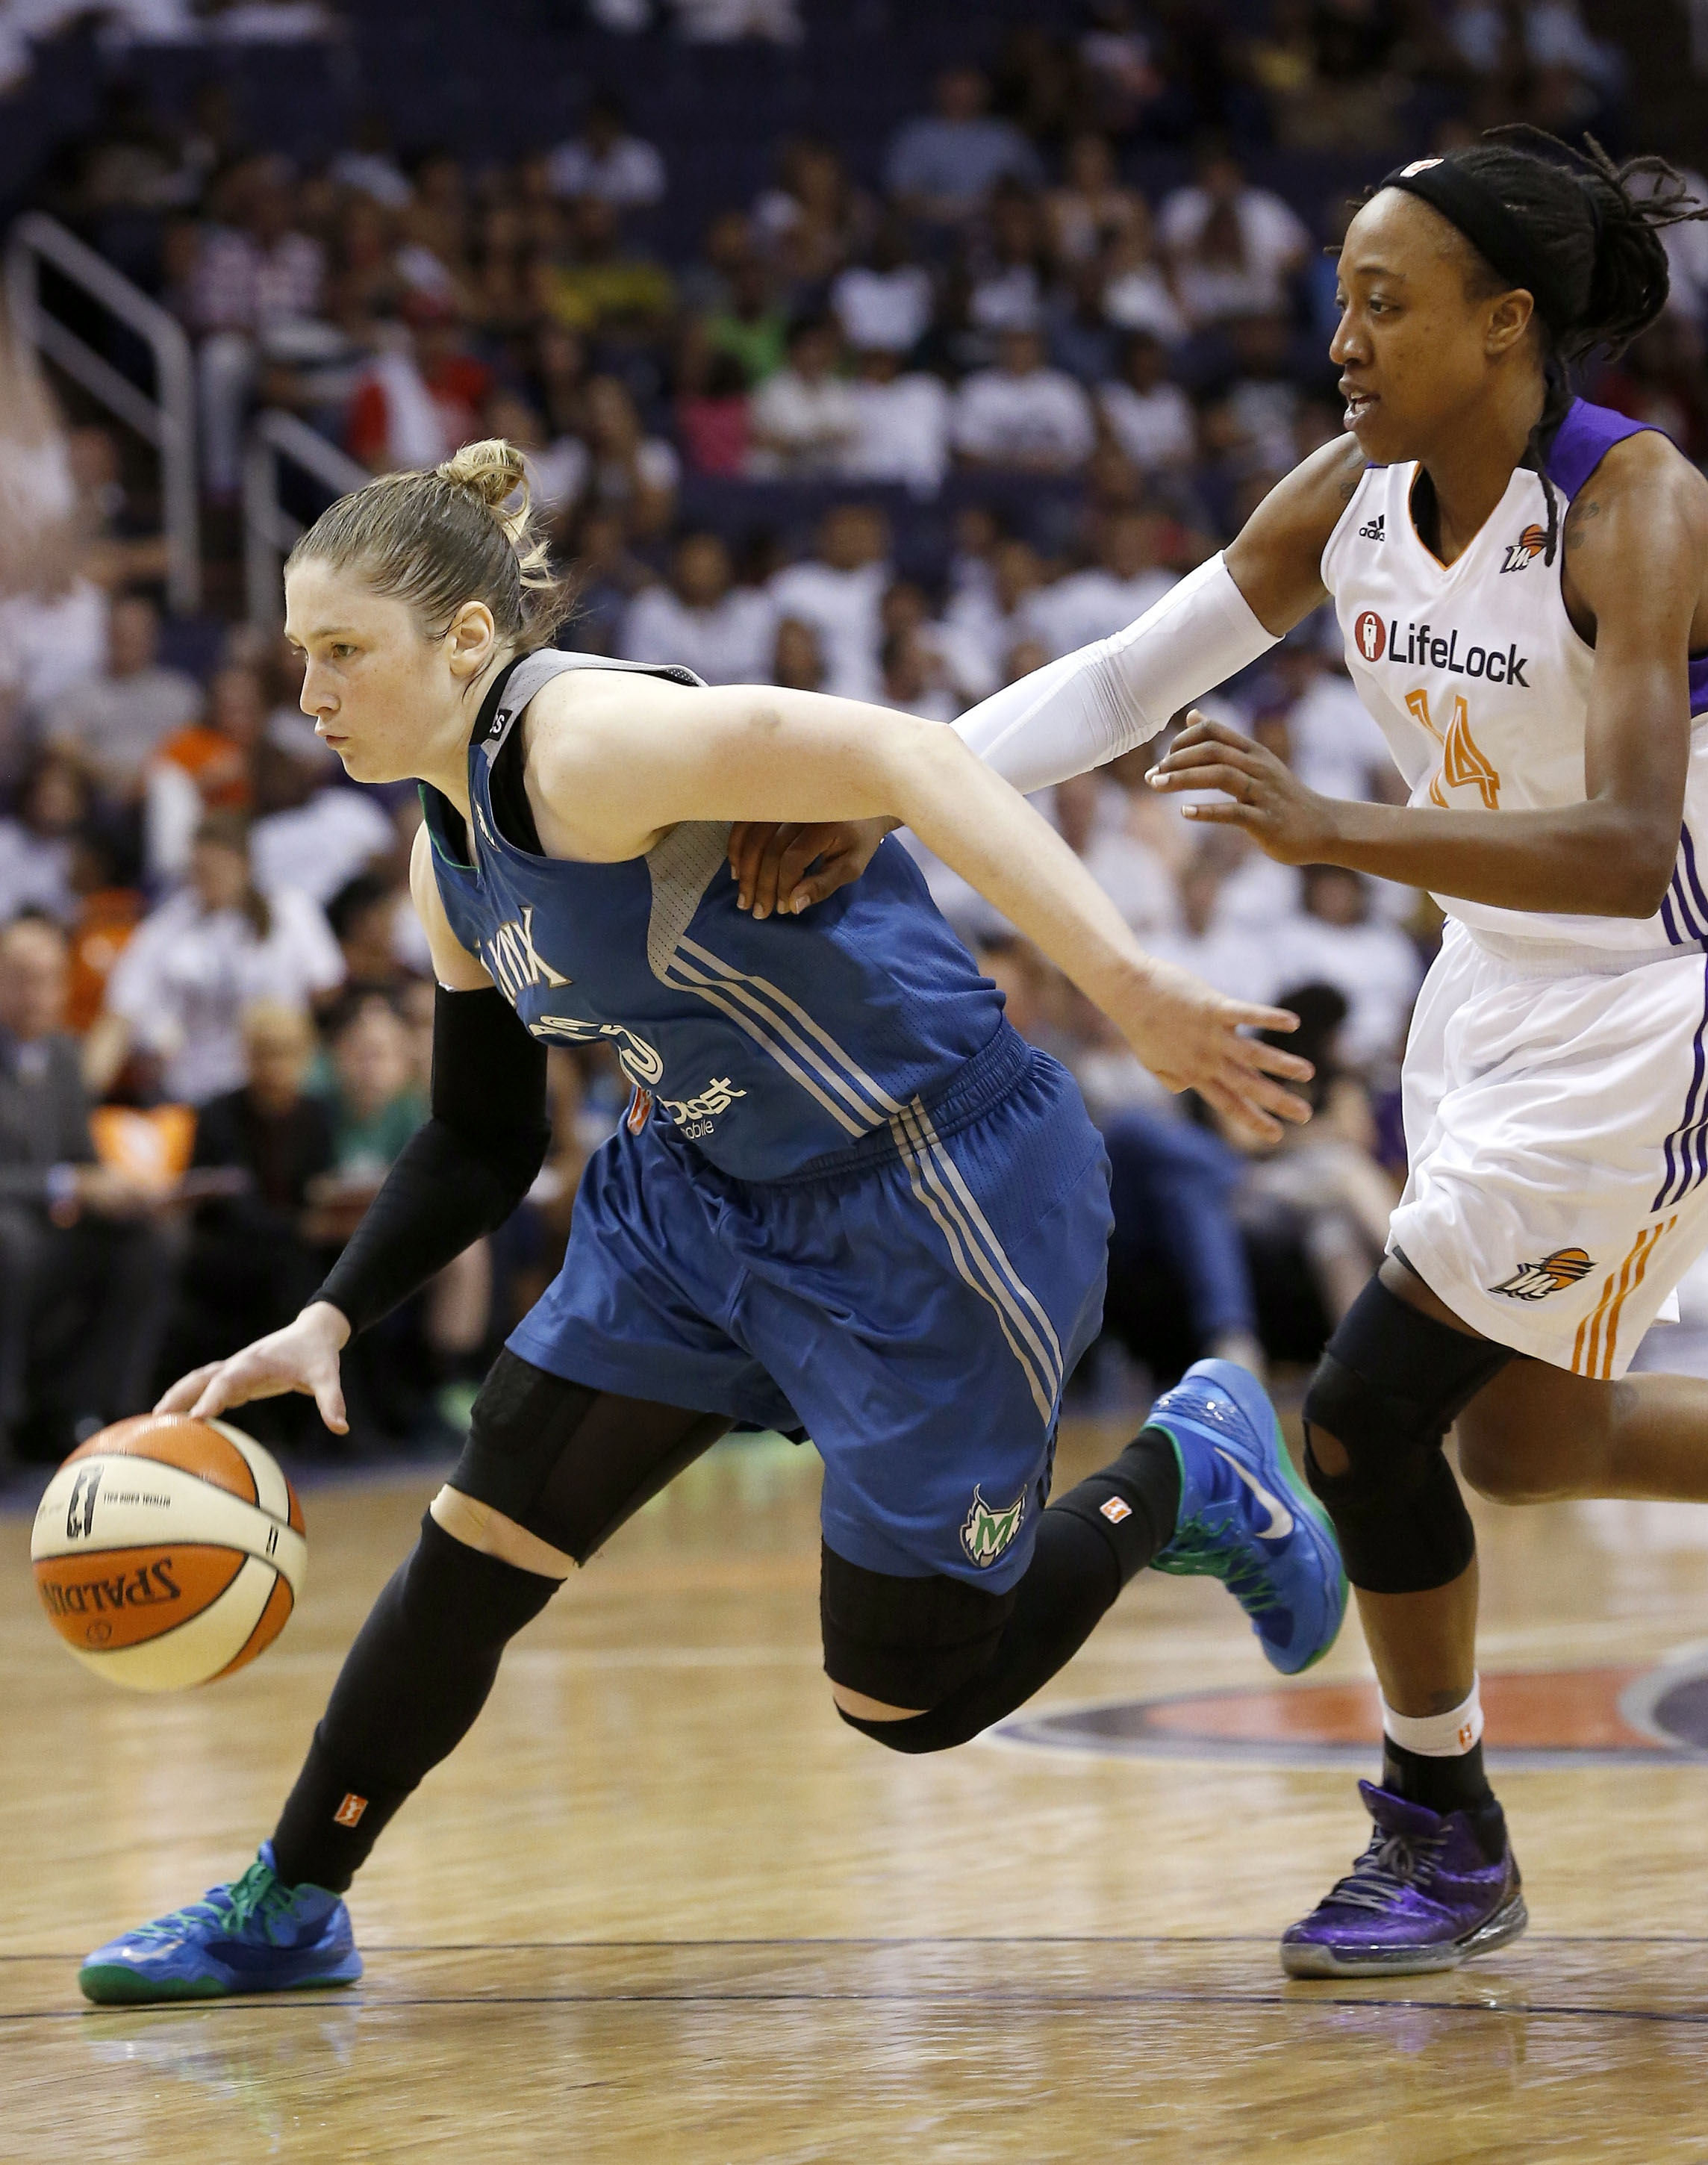 Minnesota Lynx's Lindsay Whalen, left, dribbles past Phoenix Mercury's Alexis Hornbuckle (14) during the second half in a WNBA Western Conference Finals basketball game on Sunday, Sept. 29, 2013, in Phoenix. The Lynx defeated the Mercury 72-65 and won the Western Conference Finals 2-0, earning a trip to the WNBA Finals to face the Atlanta Dream